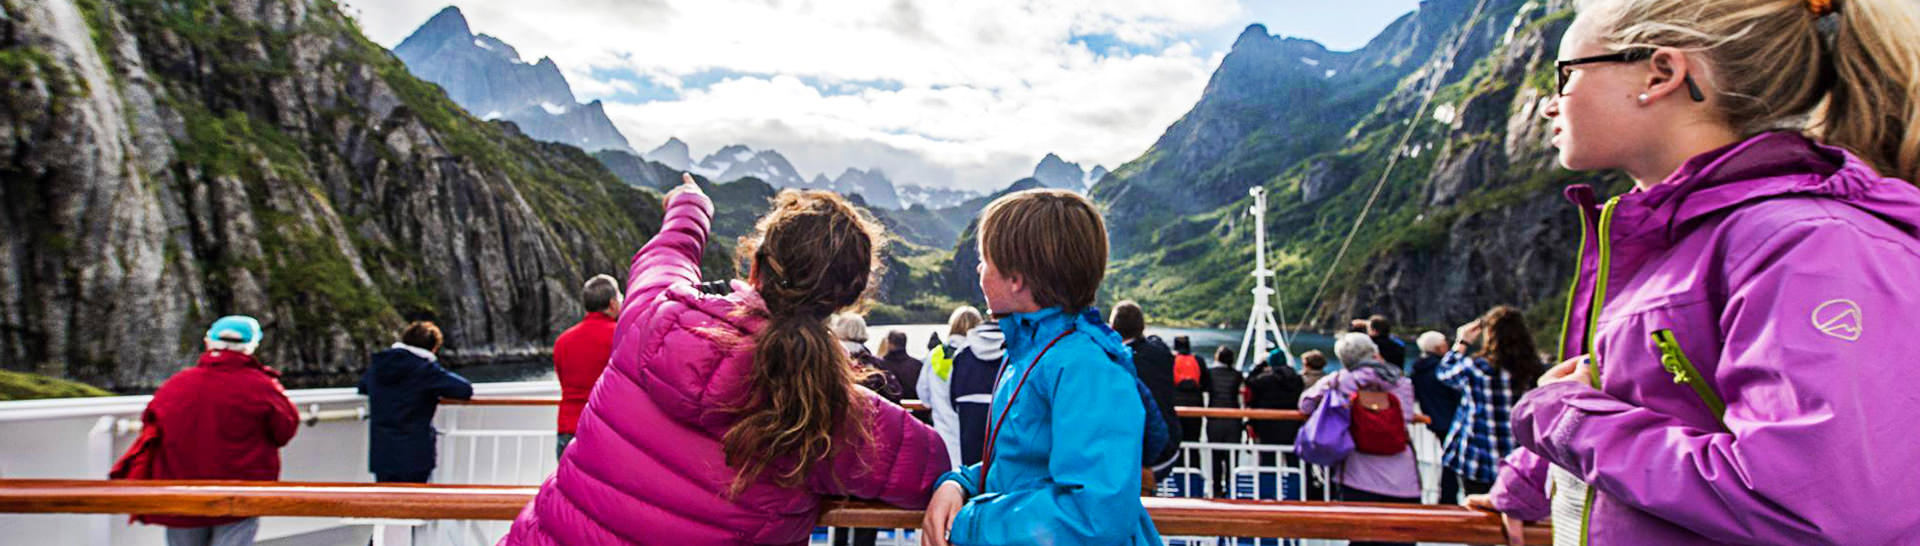 Cruising the Norwegian fjords on board the Hurtigruten ship